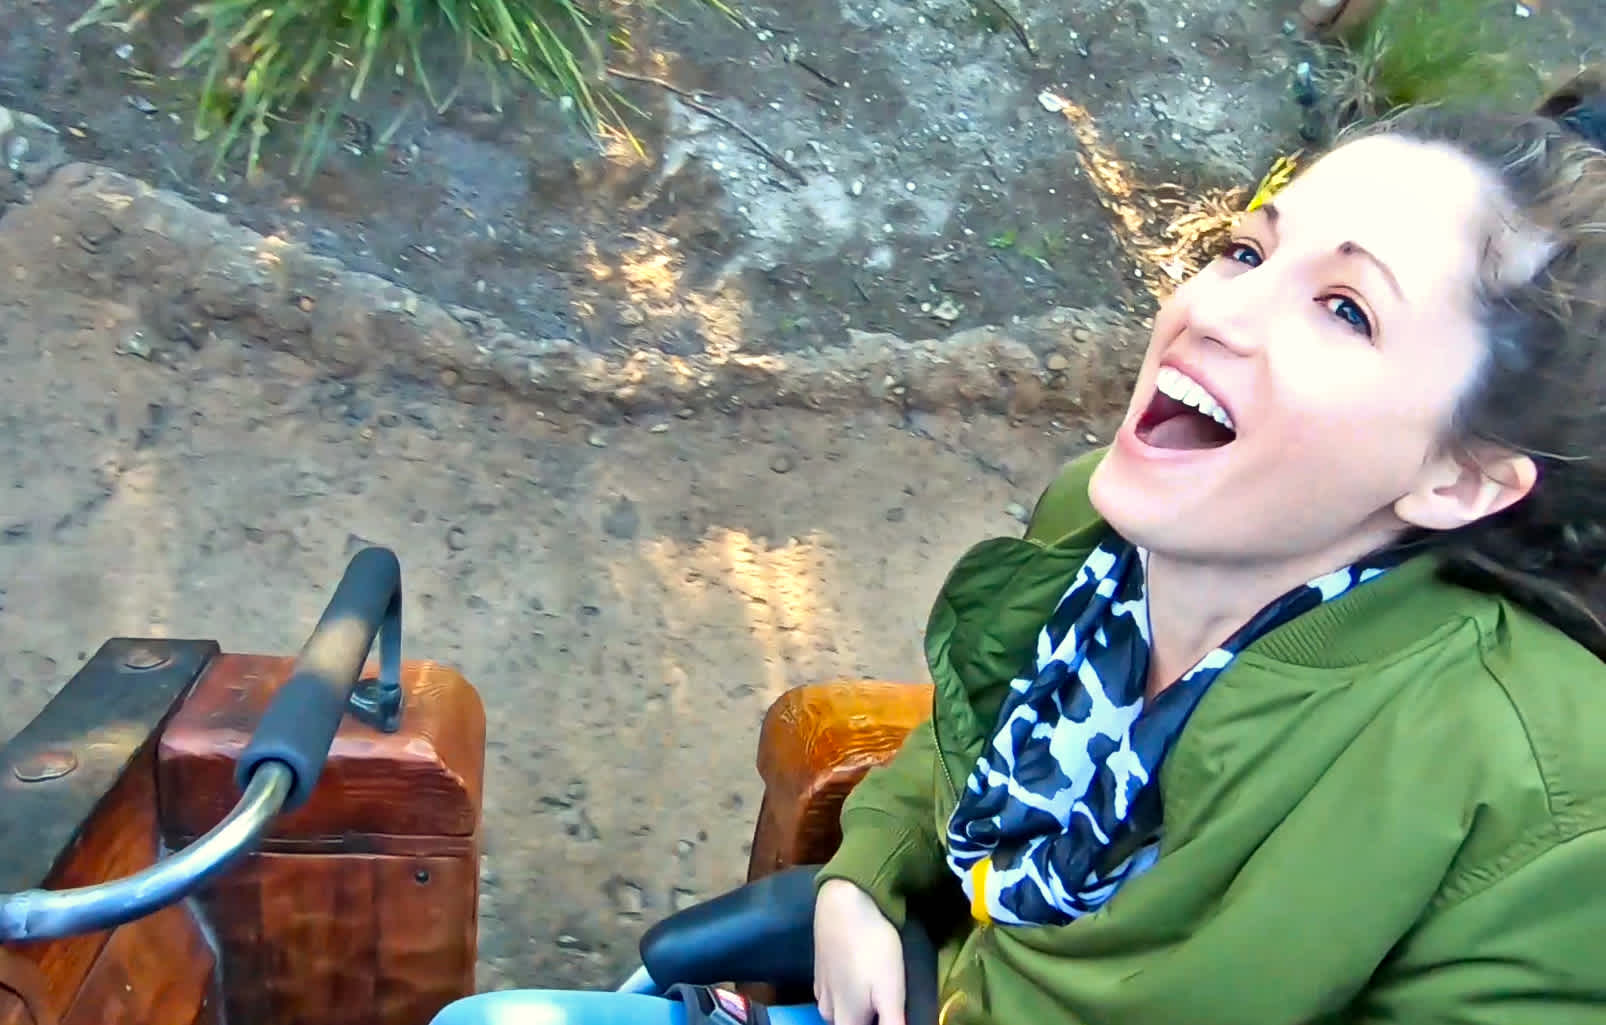 Laughing on Seven Dwarfs Mine Train